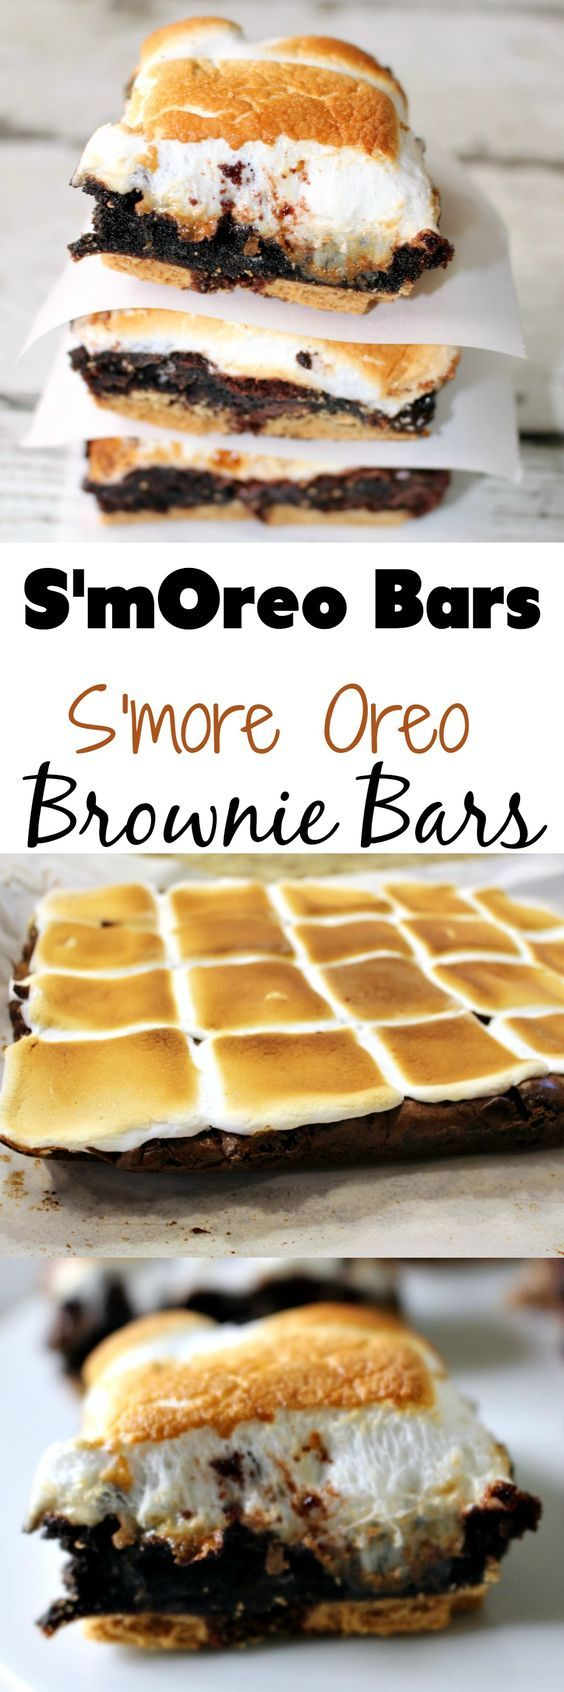 These S'more Oreo Brownie Bars, aka the S'mOreo, is the perfect summertime dessert (